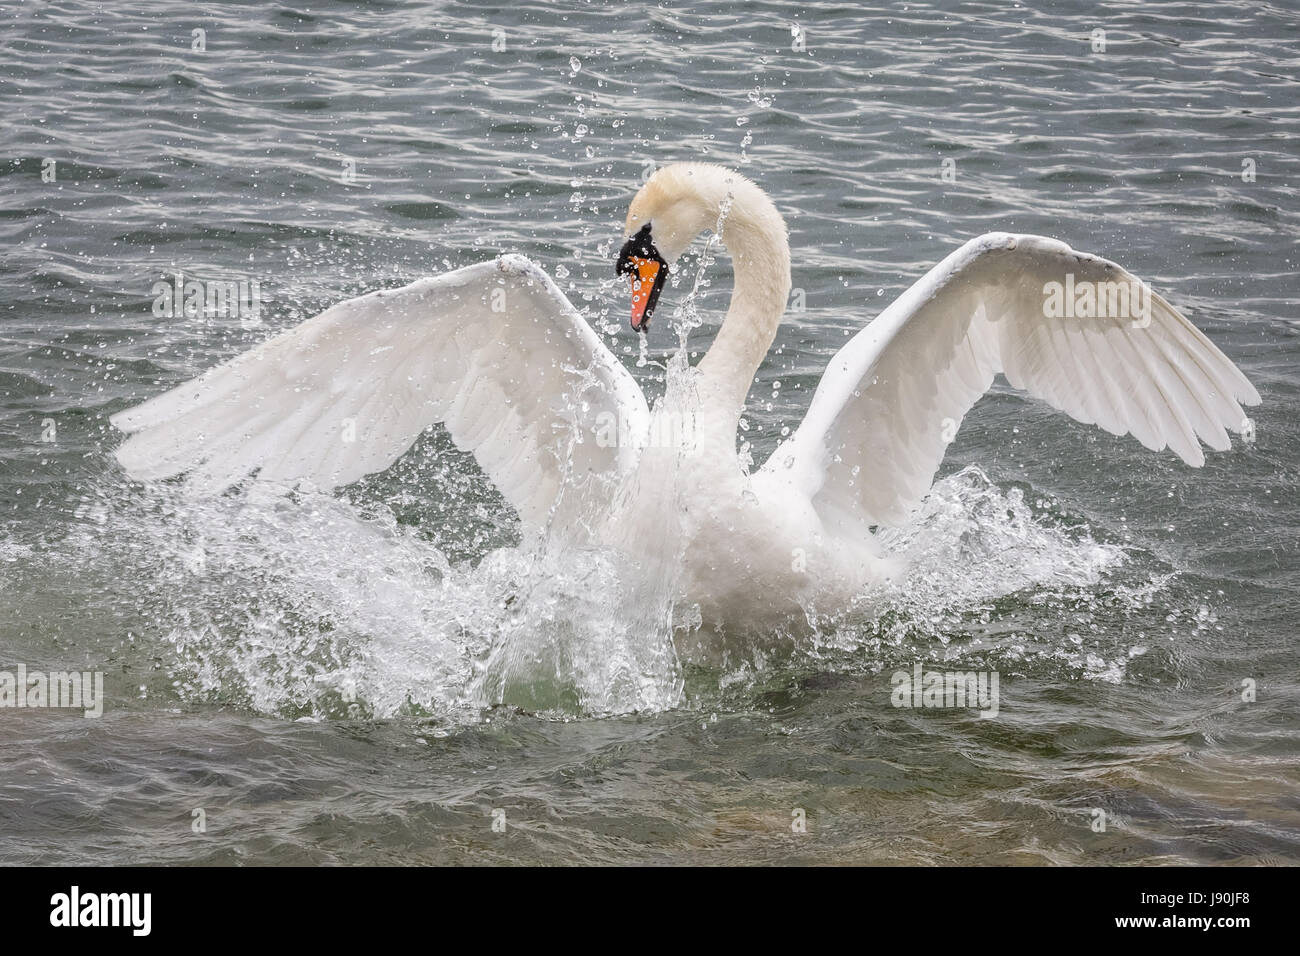 London, UK. 30th May, 2017. Mute swan on Canada Water pond © Guy Corbishley/Alamy Live News - Stock Image